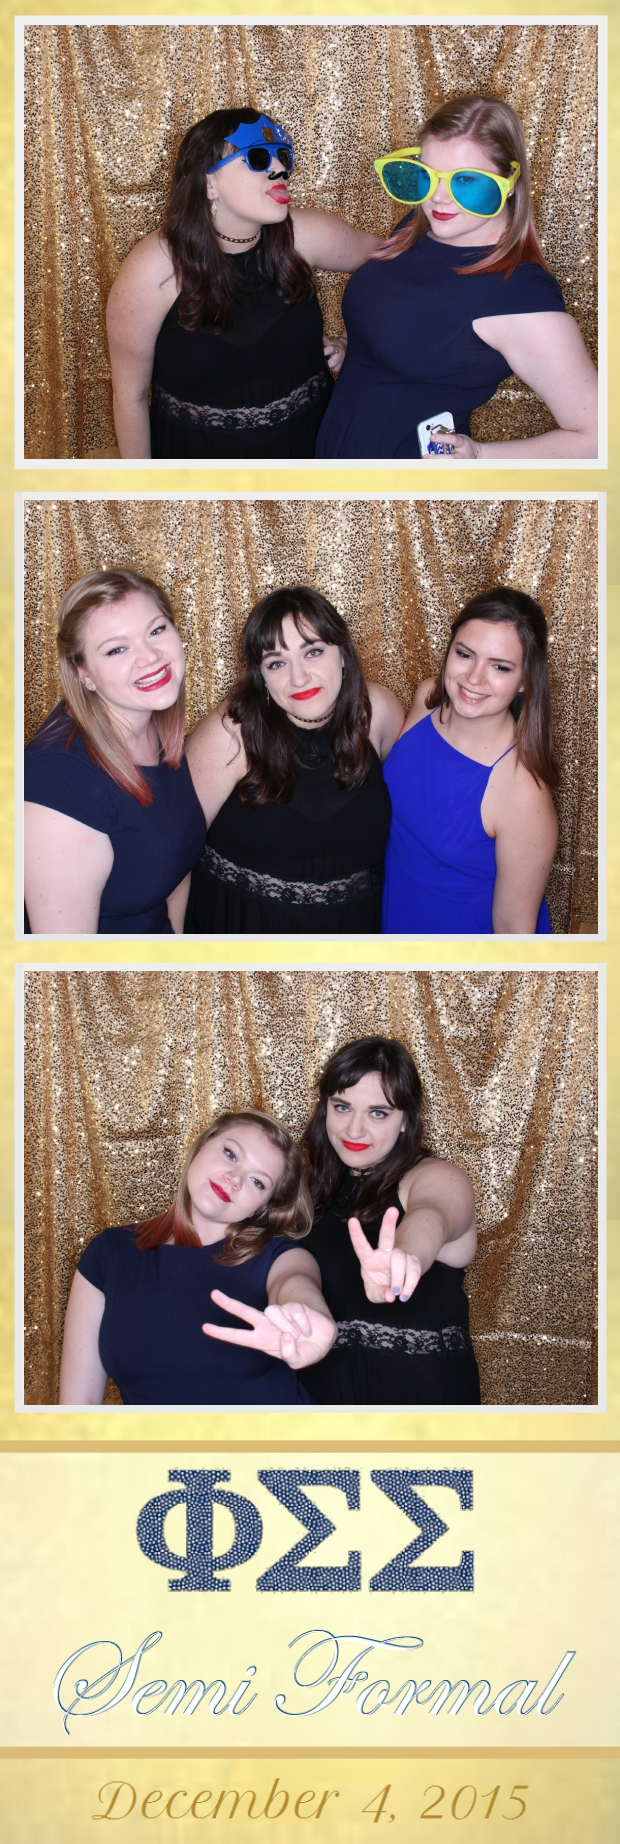 Guest House Events Photo Booth Phi Sigma Sigma Semi Formal (6).jpg